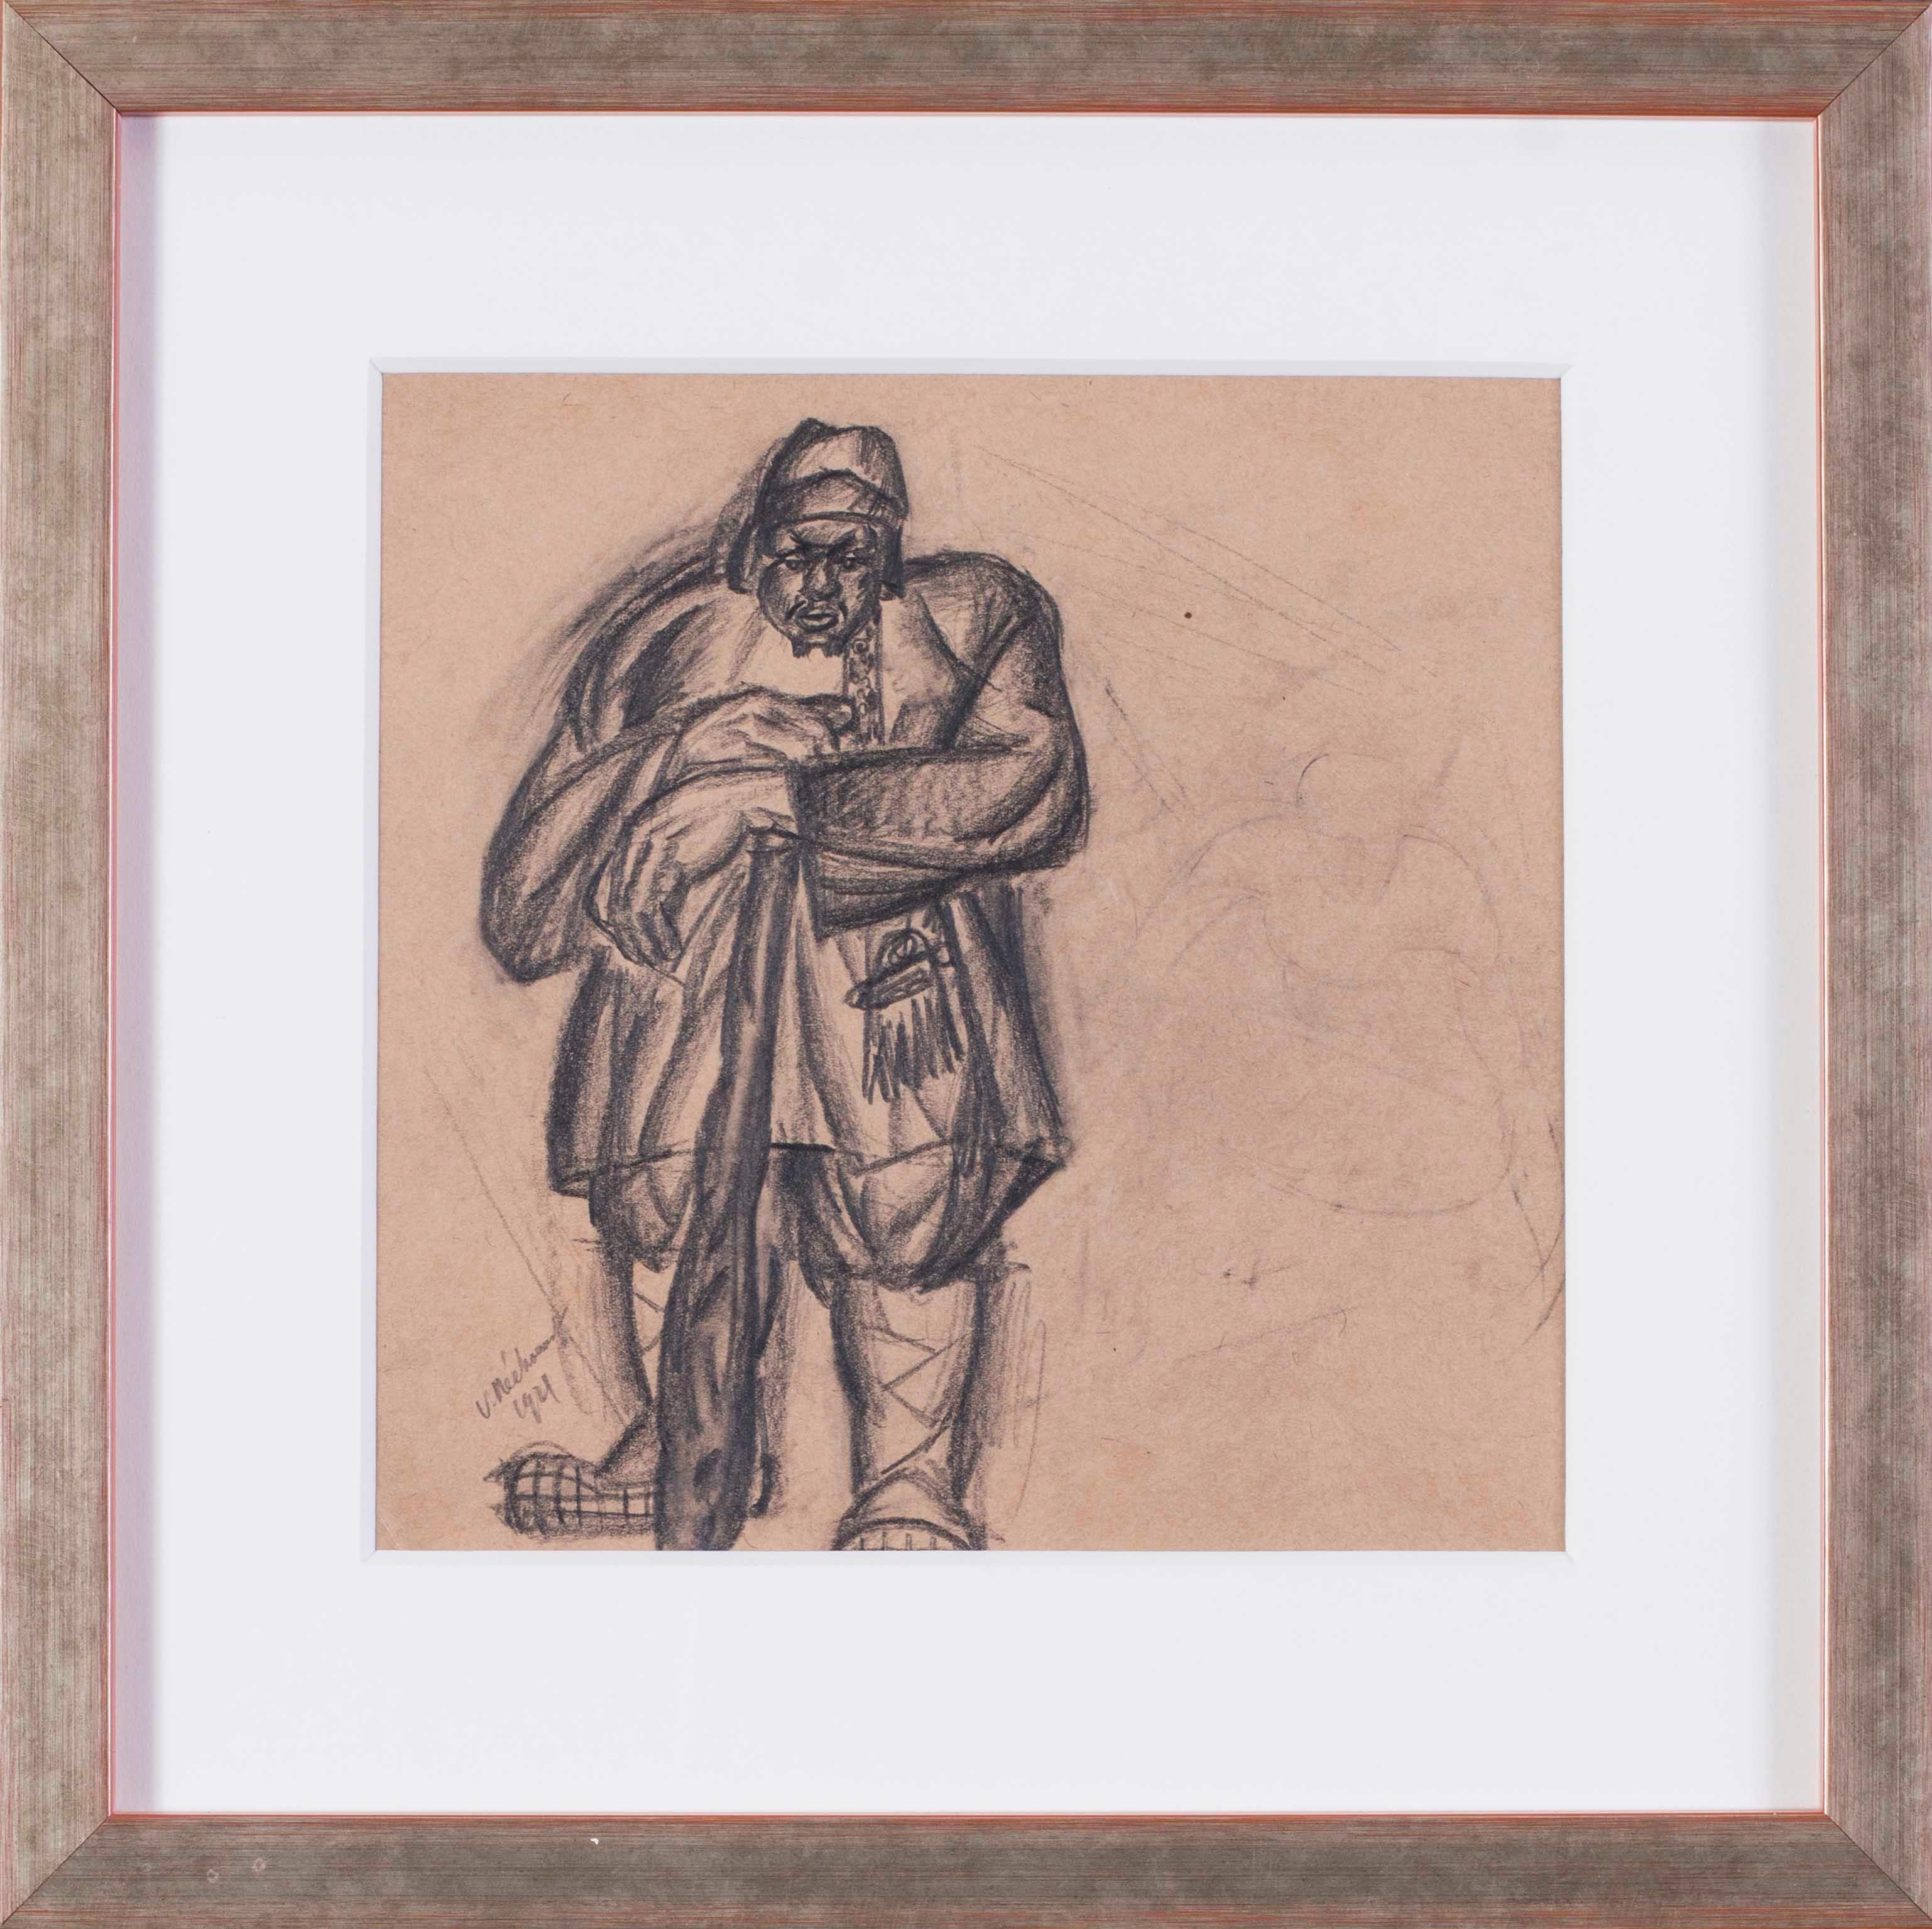 Russian, 20th Century Art deco drawing of a Turkish warrior